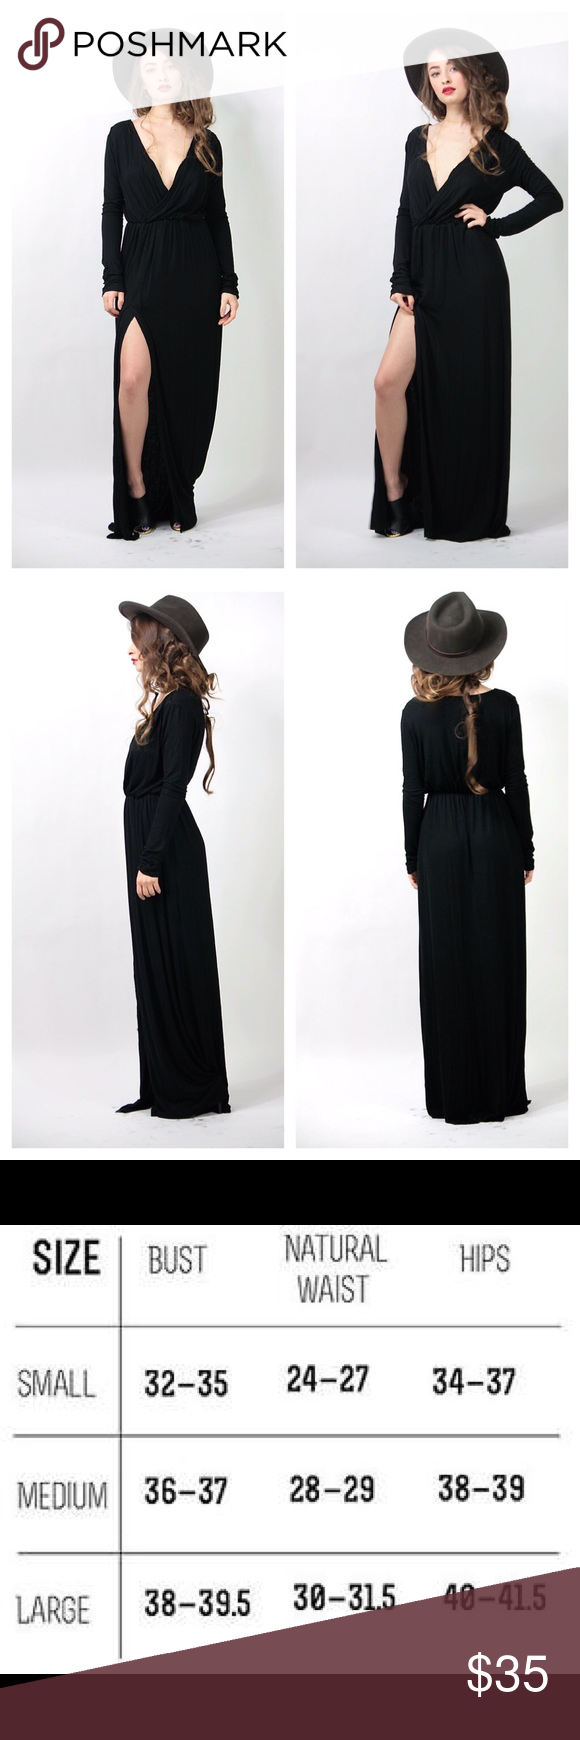 Black maxi long sleeve dress flirty thigh slit Brand new dress - stretchy cotton dress with a draped front / snitched waist and thigh high slit - breathofyouth.com Brandy Melville Dresses Maxi